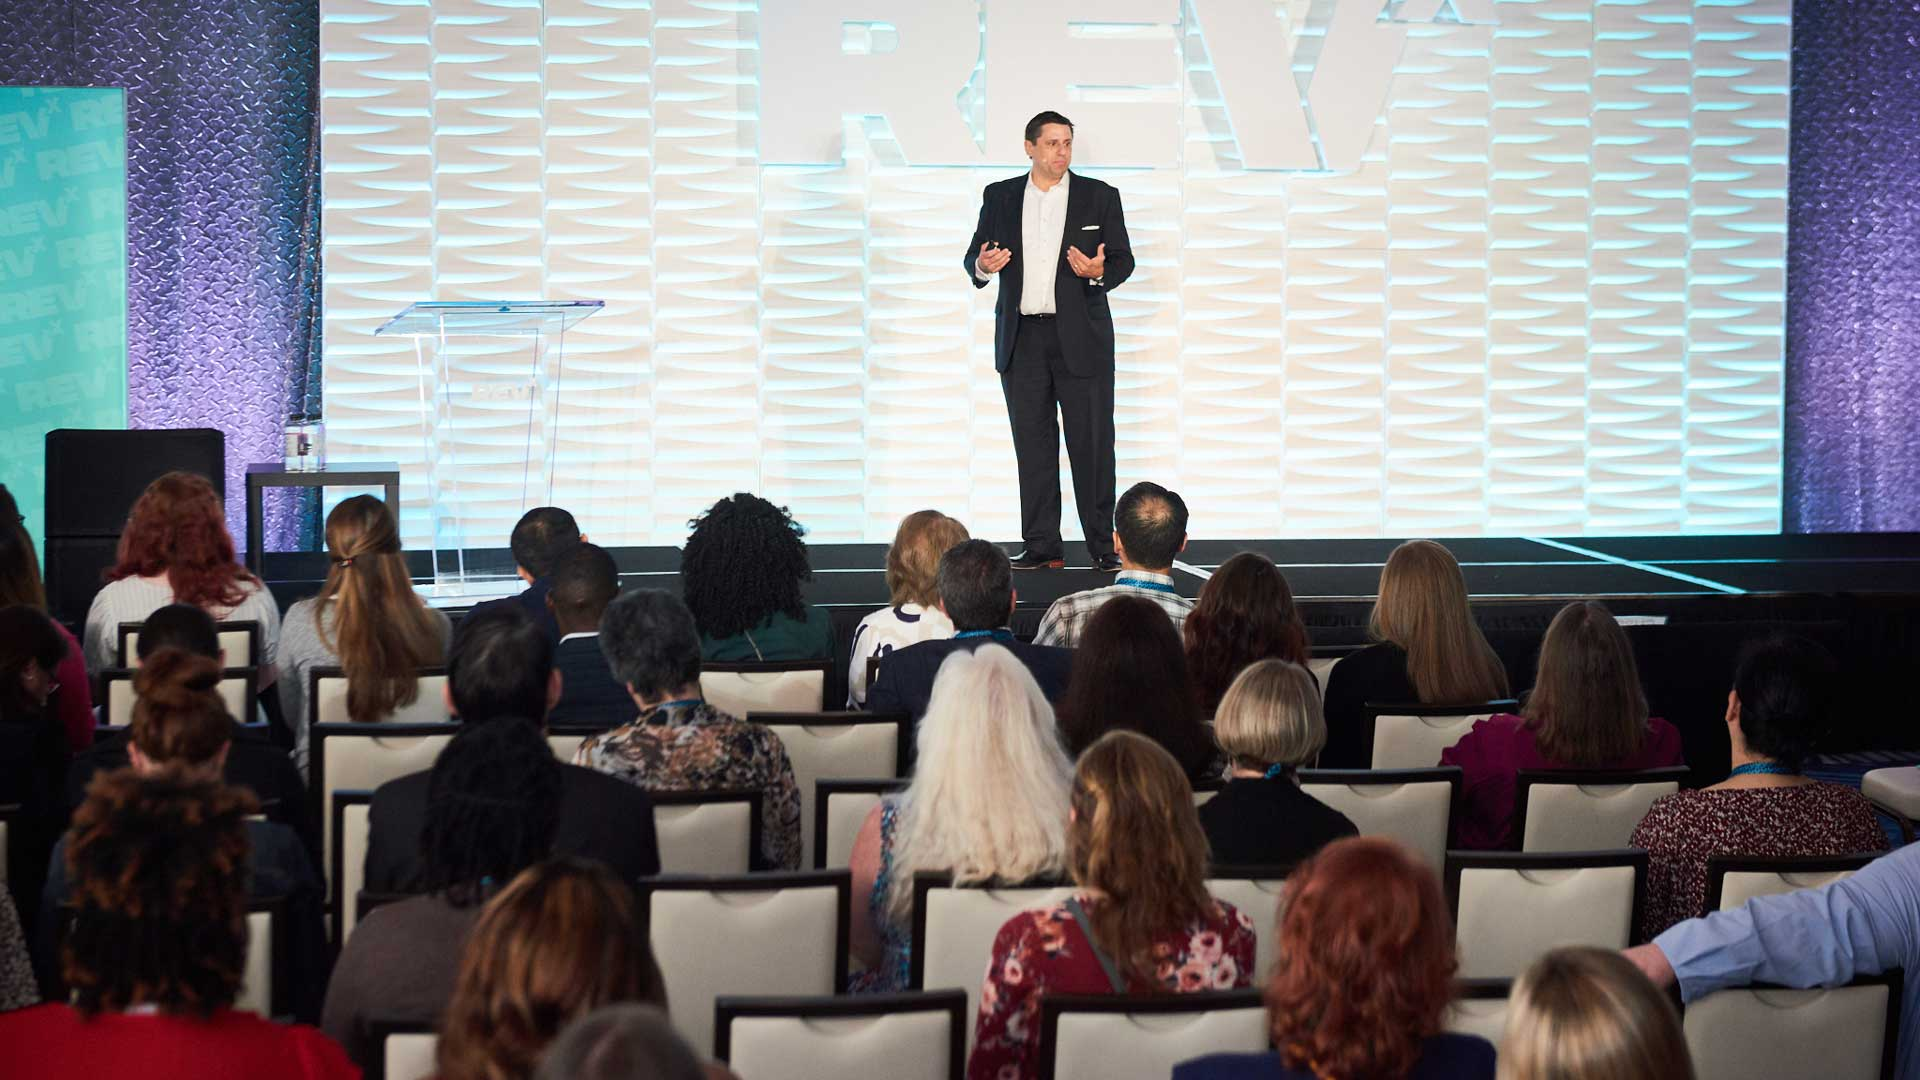 360_visuals_event_video_keynote